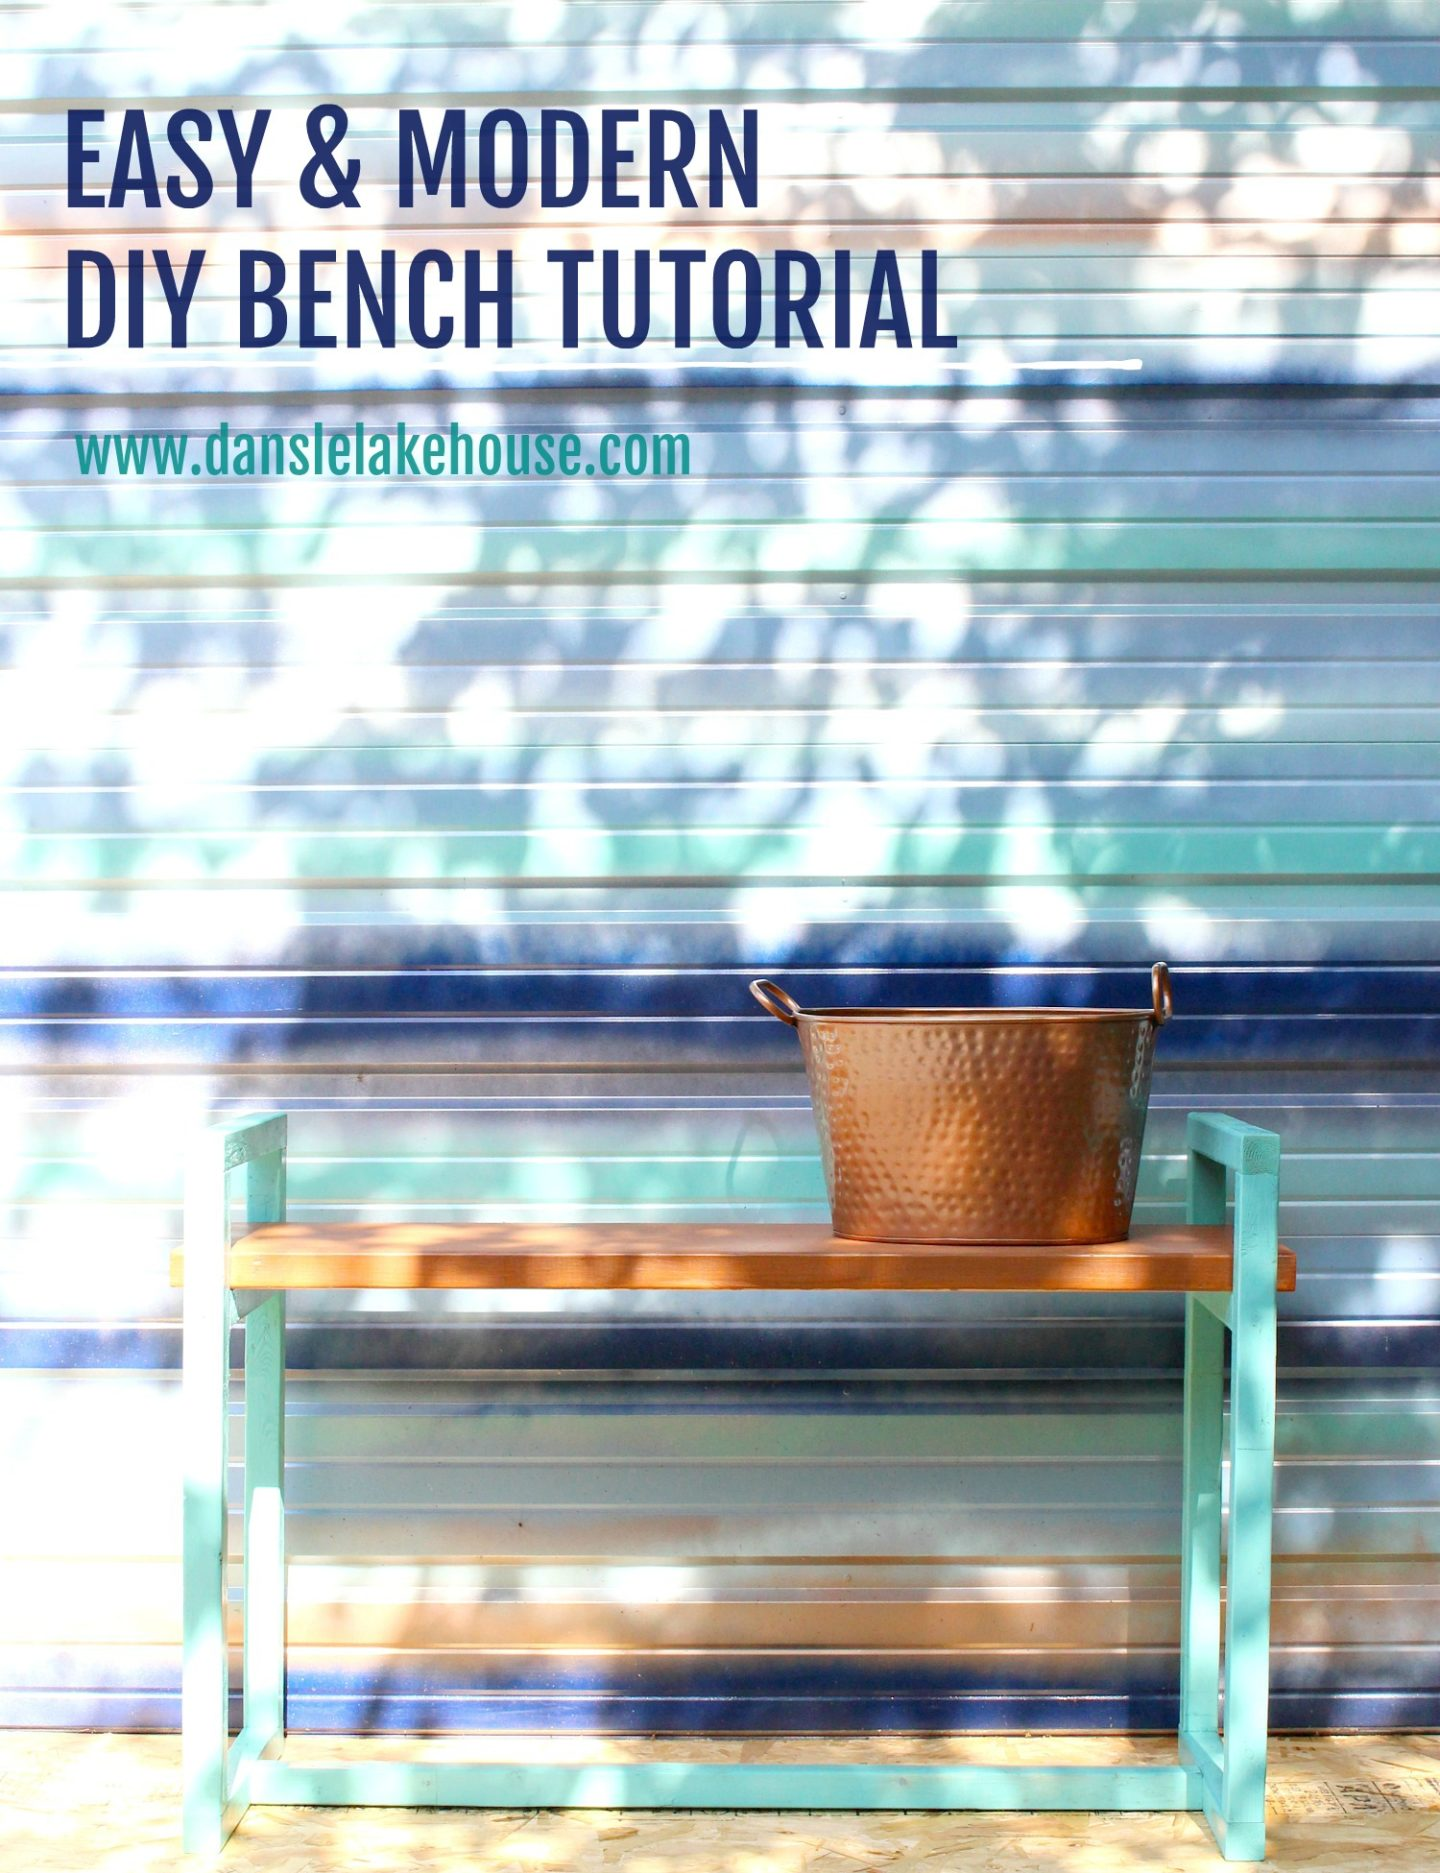 Easy & Modern DIY Bench Tutorial